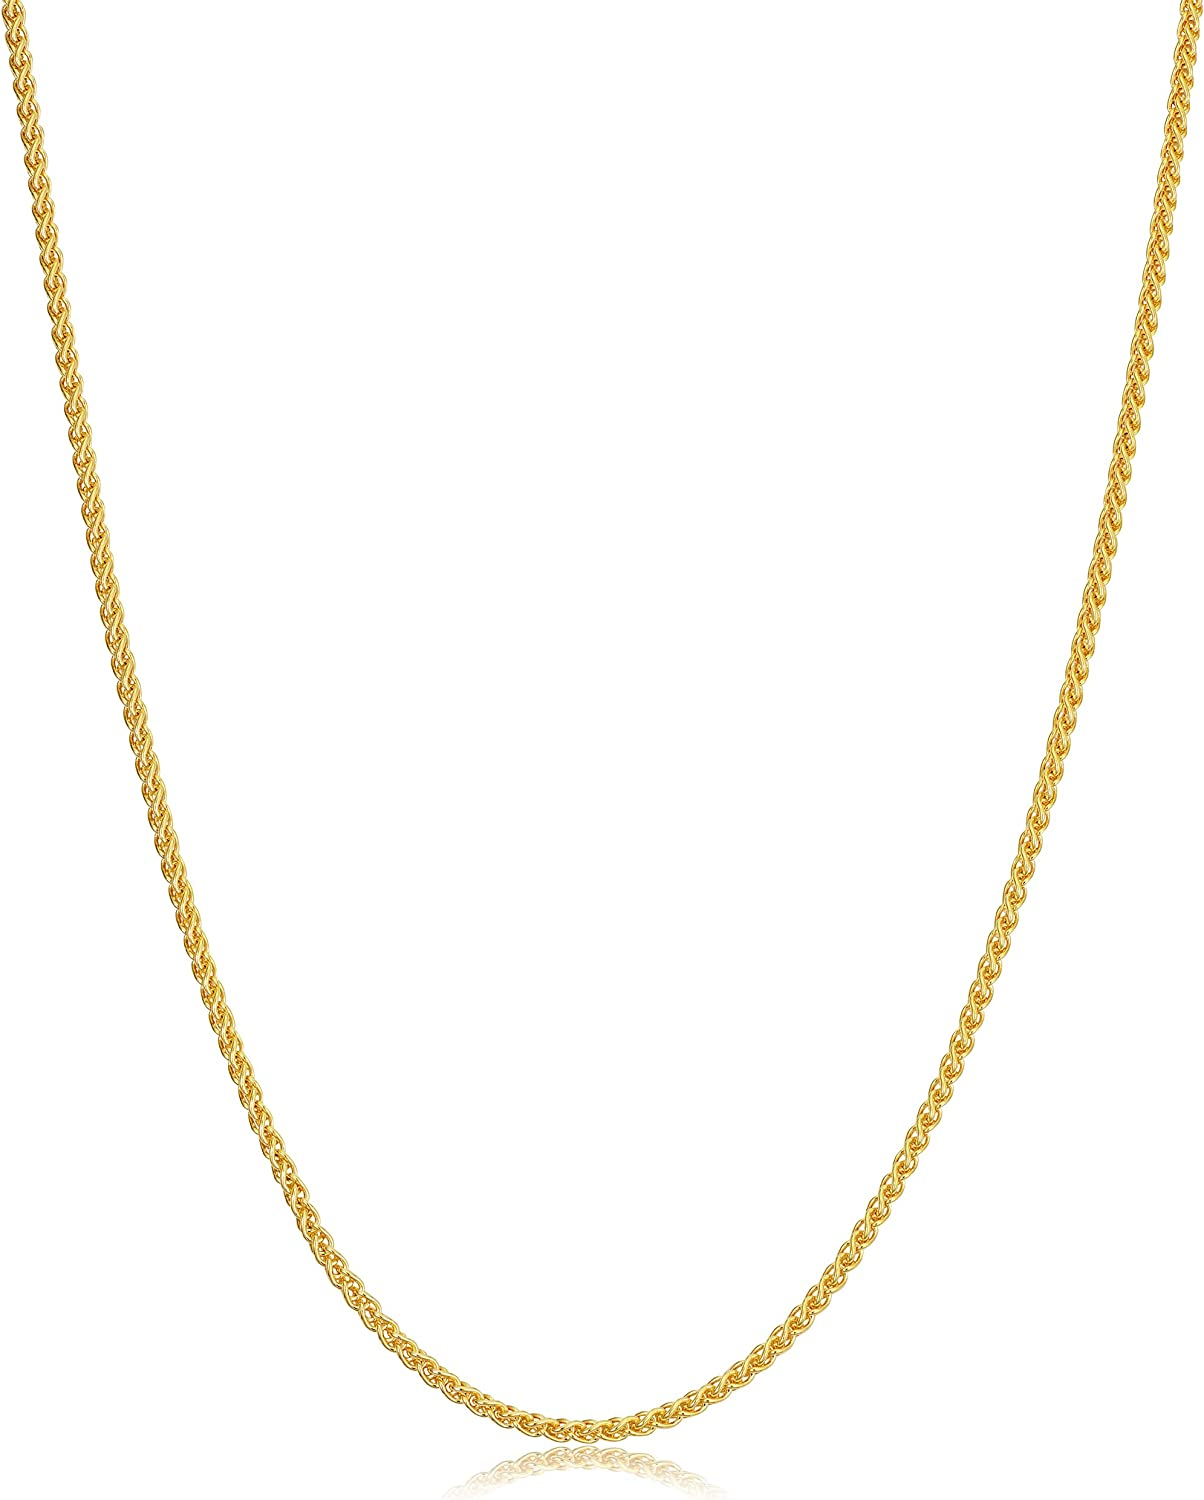 ROUND WHEAT CHAIN 14KT GOLD ROUND WHEAT CHAIN WITH LOBSTER LOCK 18 INCHES LONG